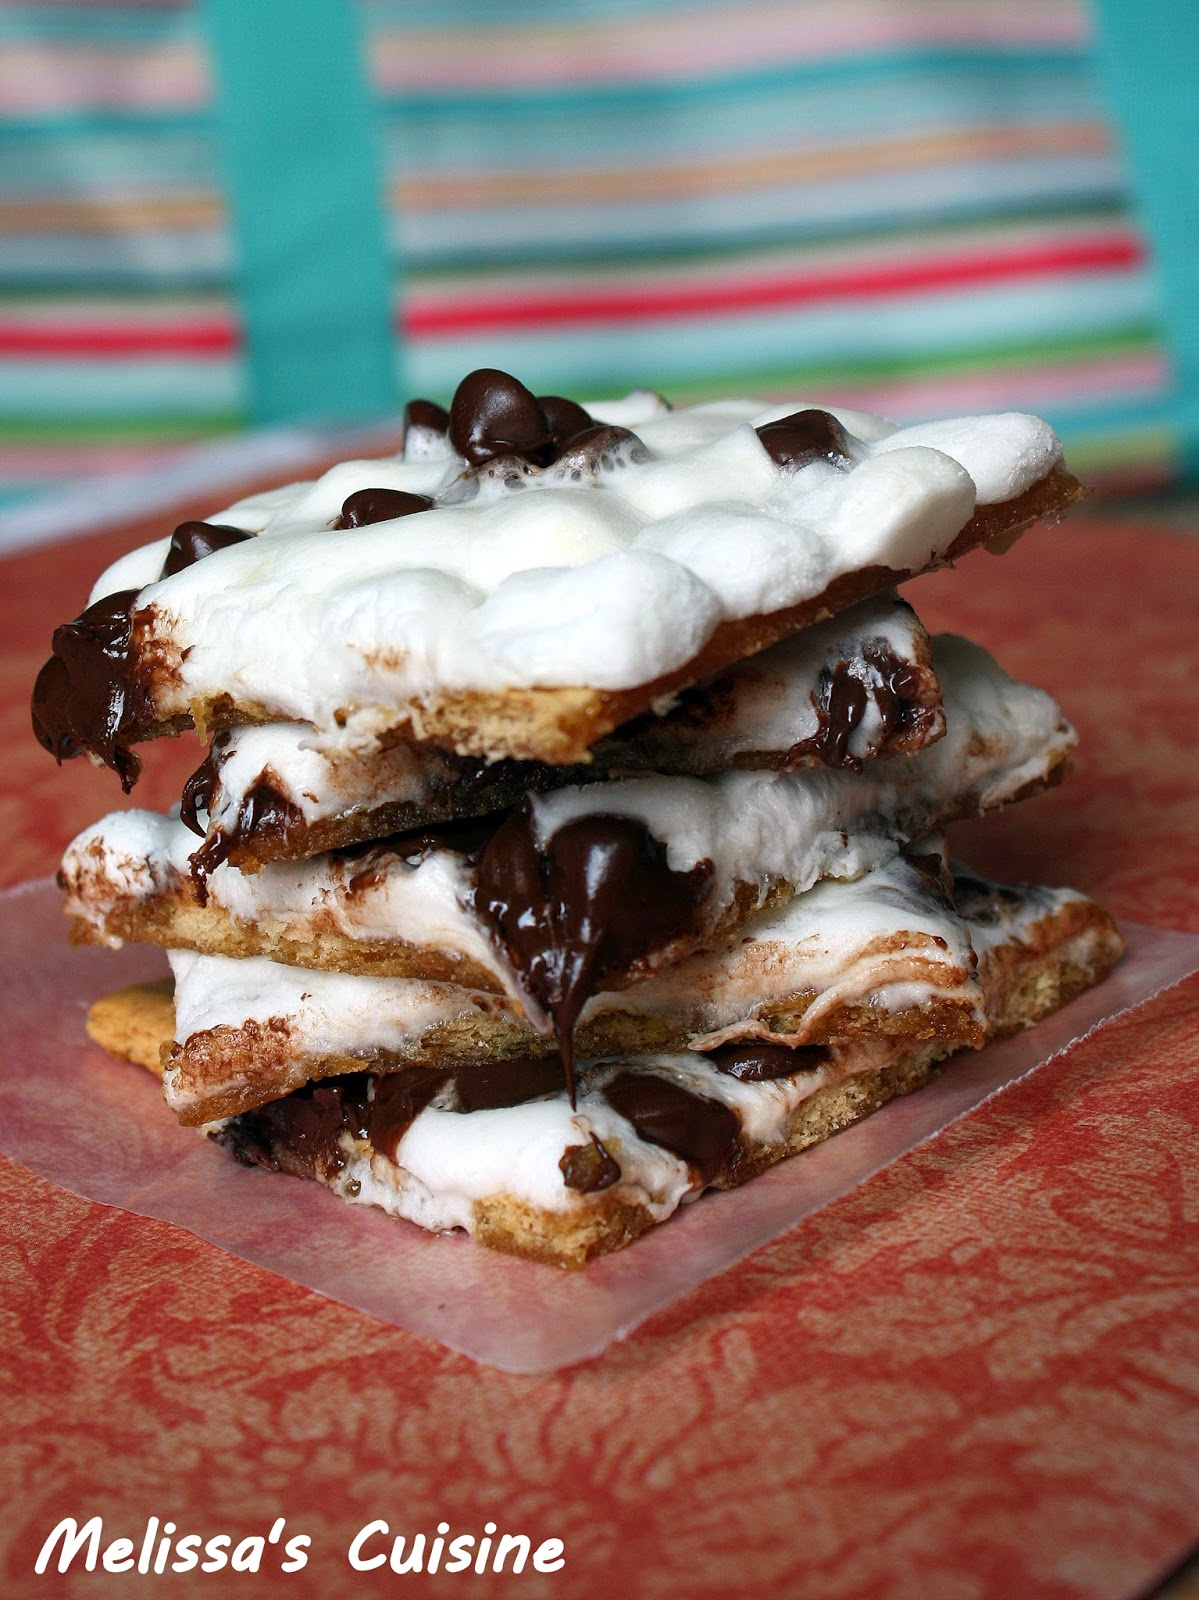 Melissa's Cuisine: S'mores Candy